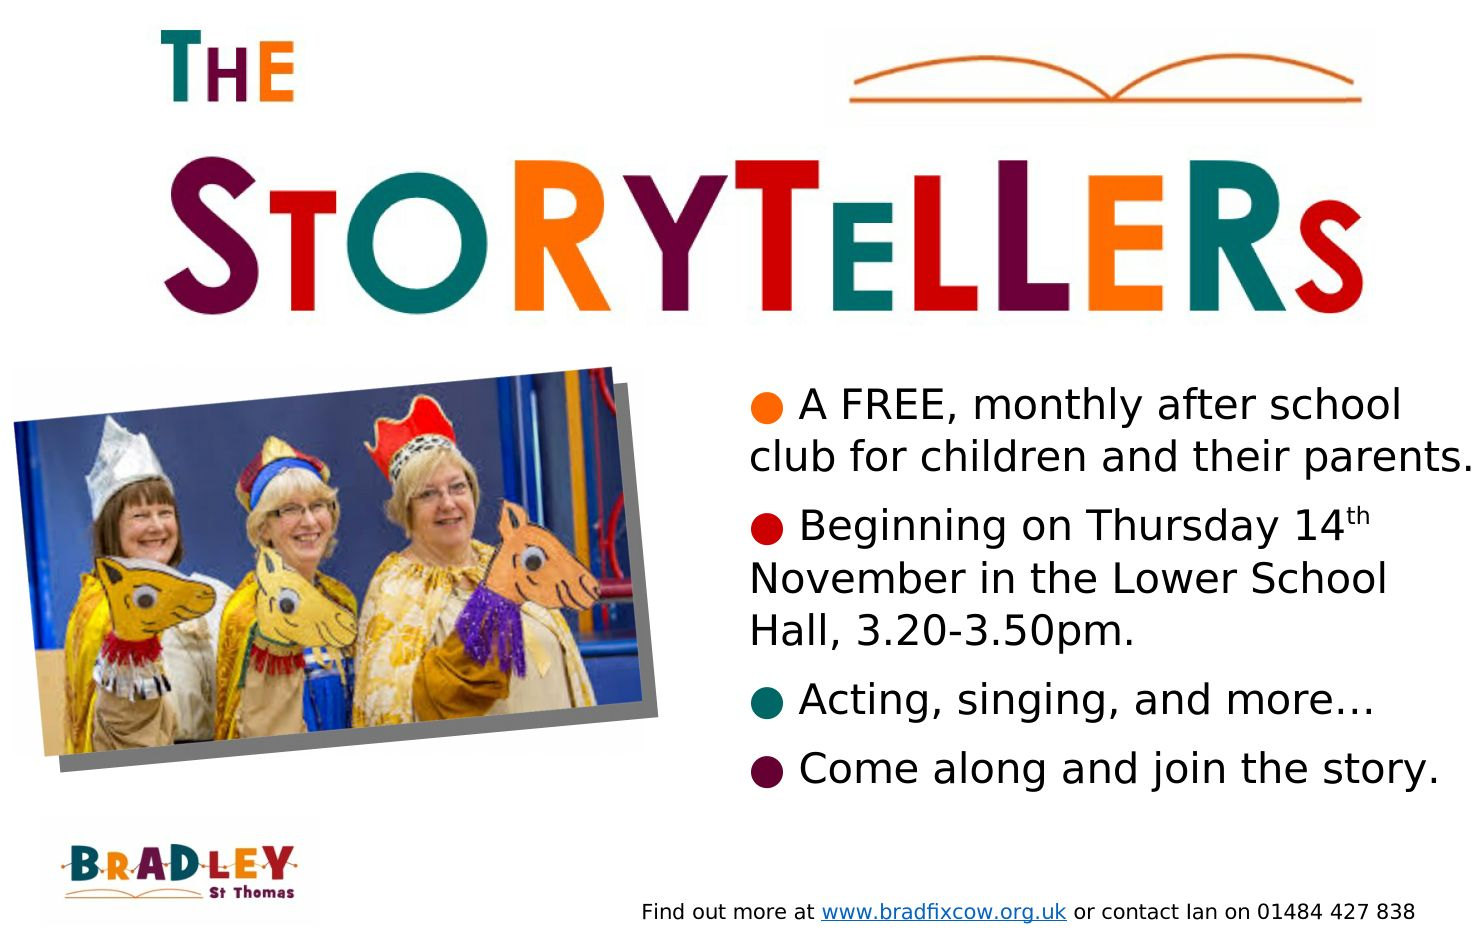 Storytellers - our new initiative in school